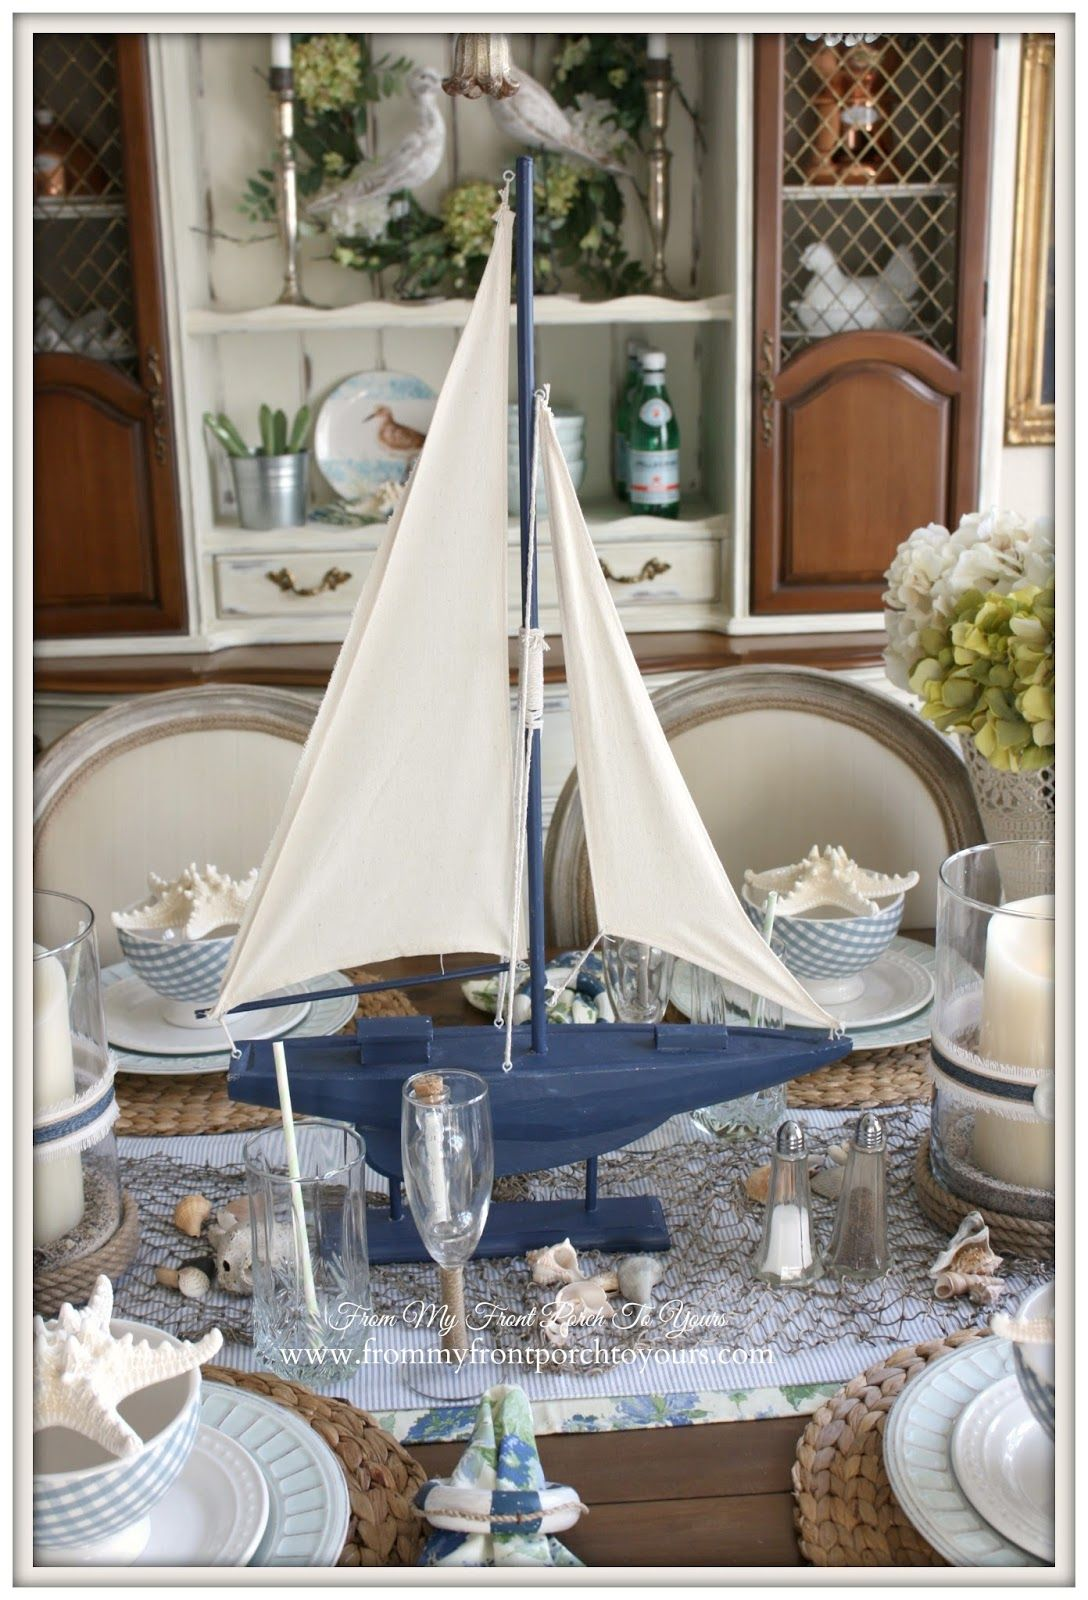 French Farmhouse Nautical Dining Room Welcome Home Summer Tour Nautical Dining Rooms Dining Room Design Beach House Decor